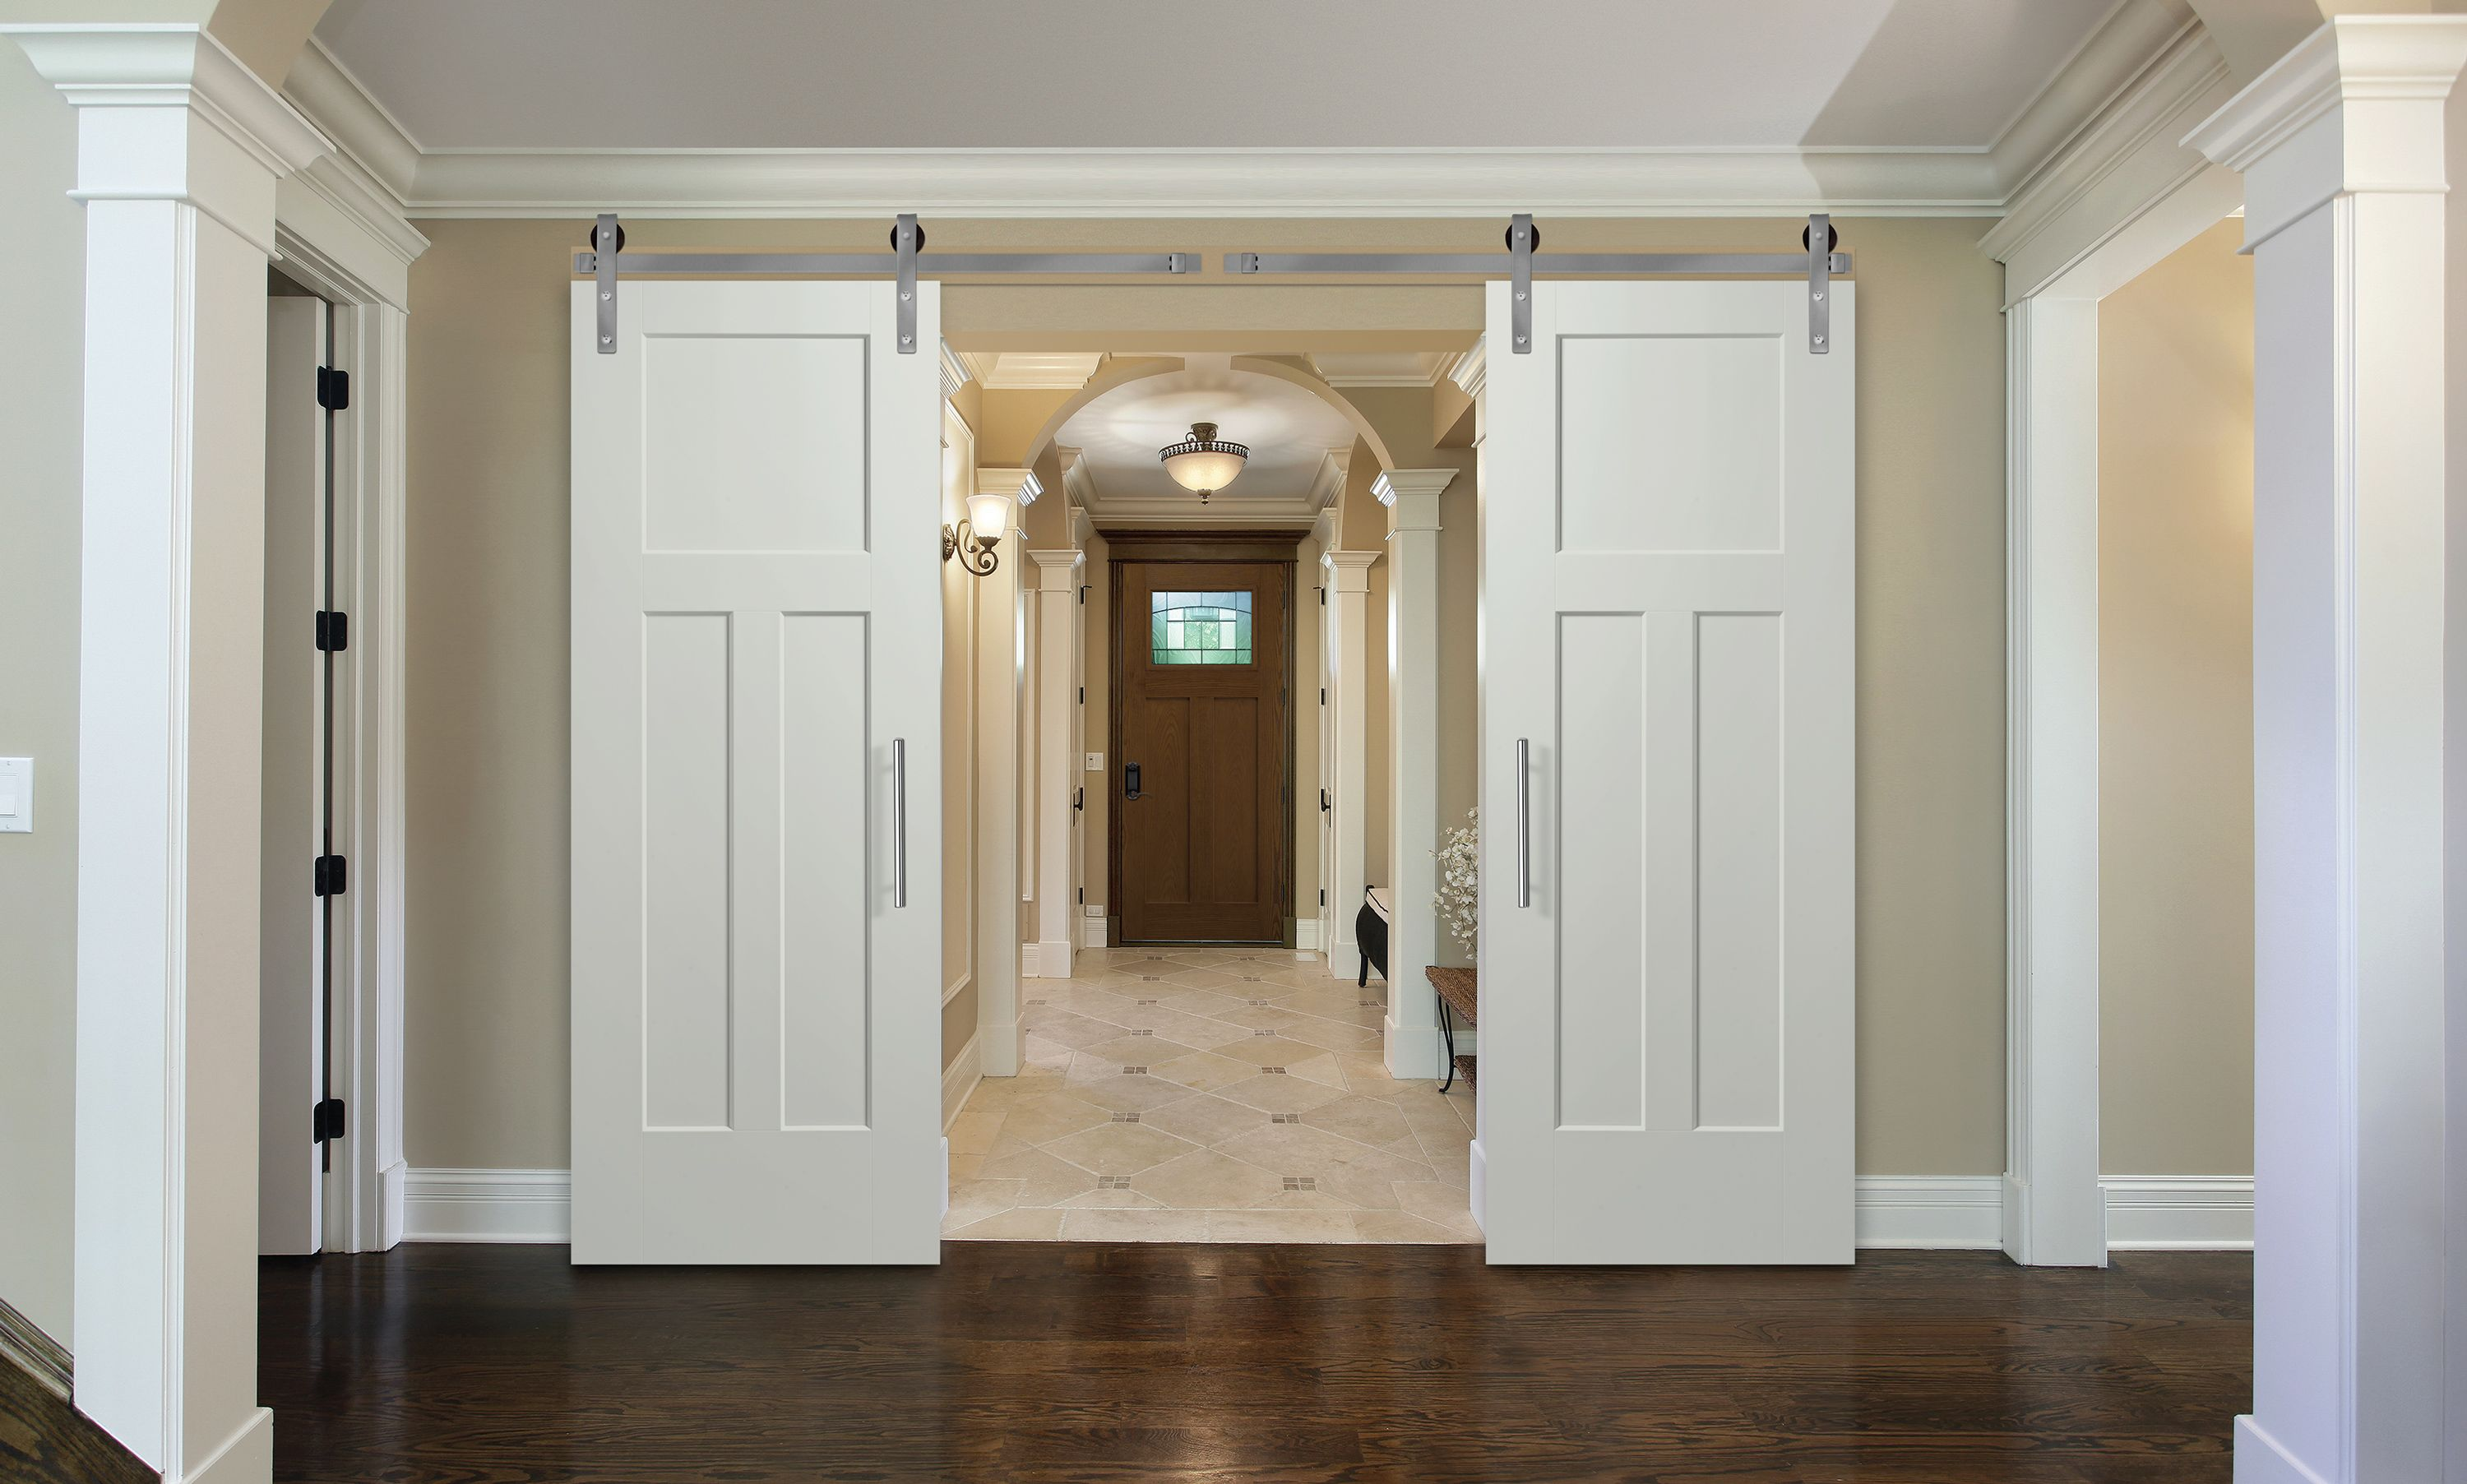 concept masonite top style fascinating lawn interior of popular door doors front and tfast craftsman image